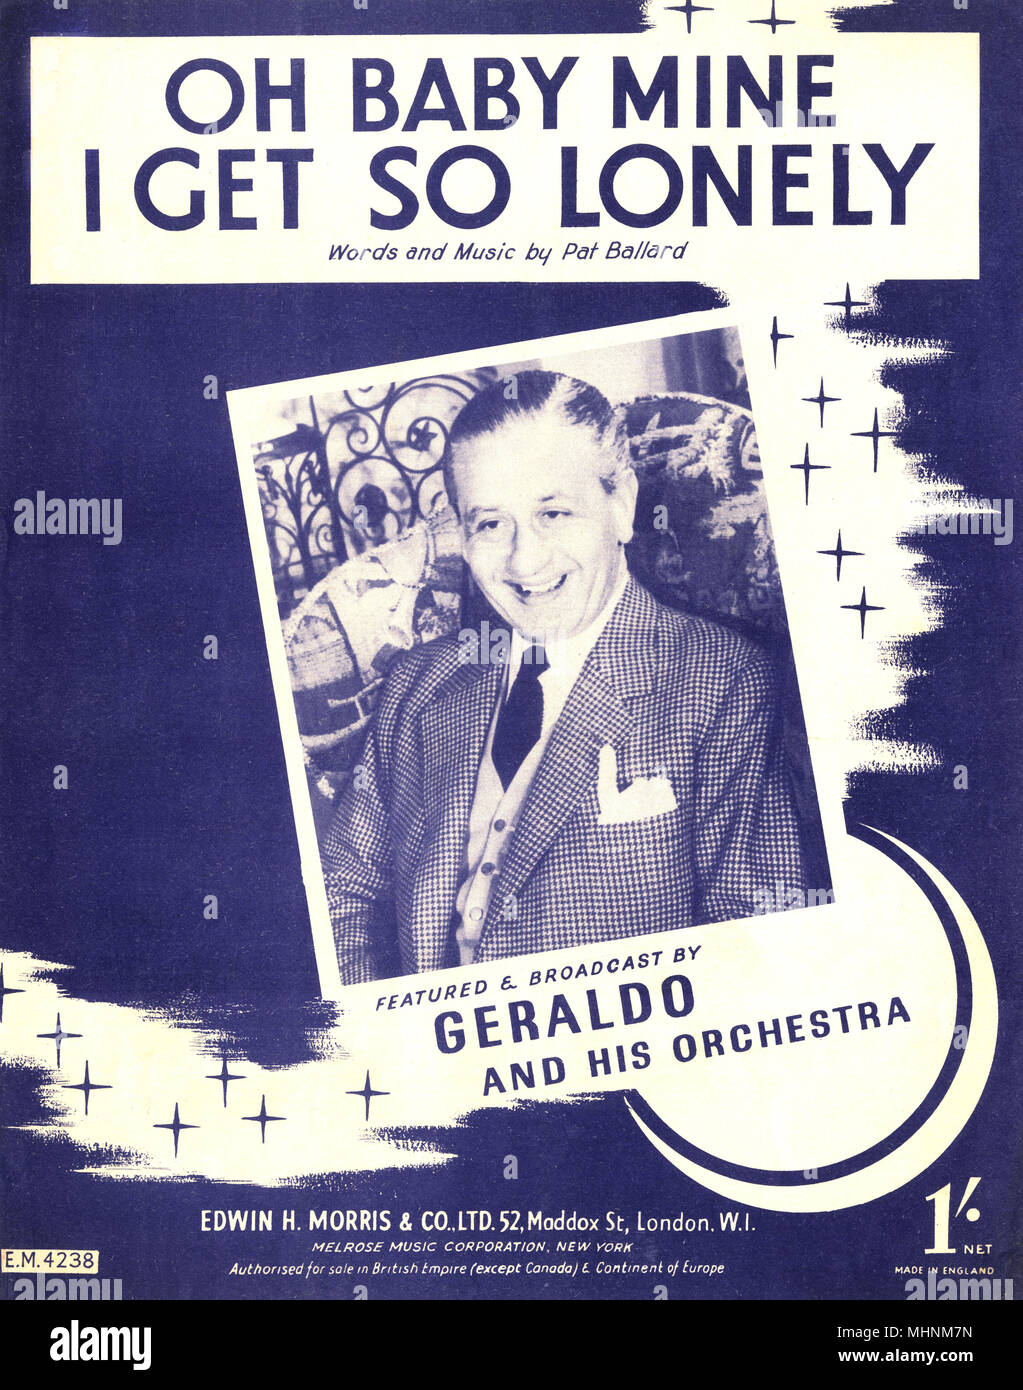 'Oh Baby mine I get so lonely' - Music Sheet Cover, words and music by Pat Ballard, featured and broadcast by Geraldo and his orchestra. An illustration of stars an a photo of Gerlado in the middle.     Date: circa 1940 - Stock Image